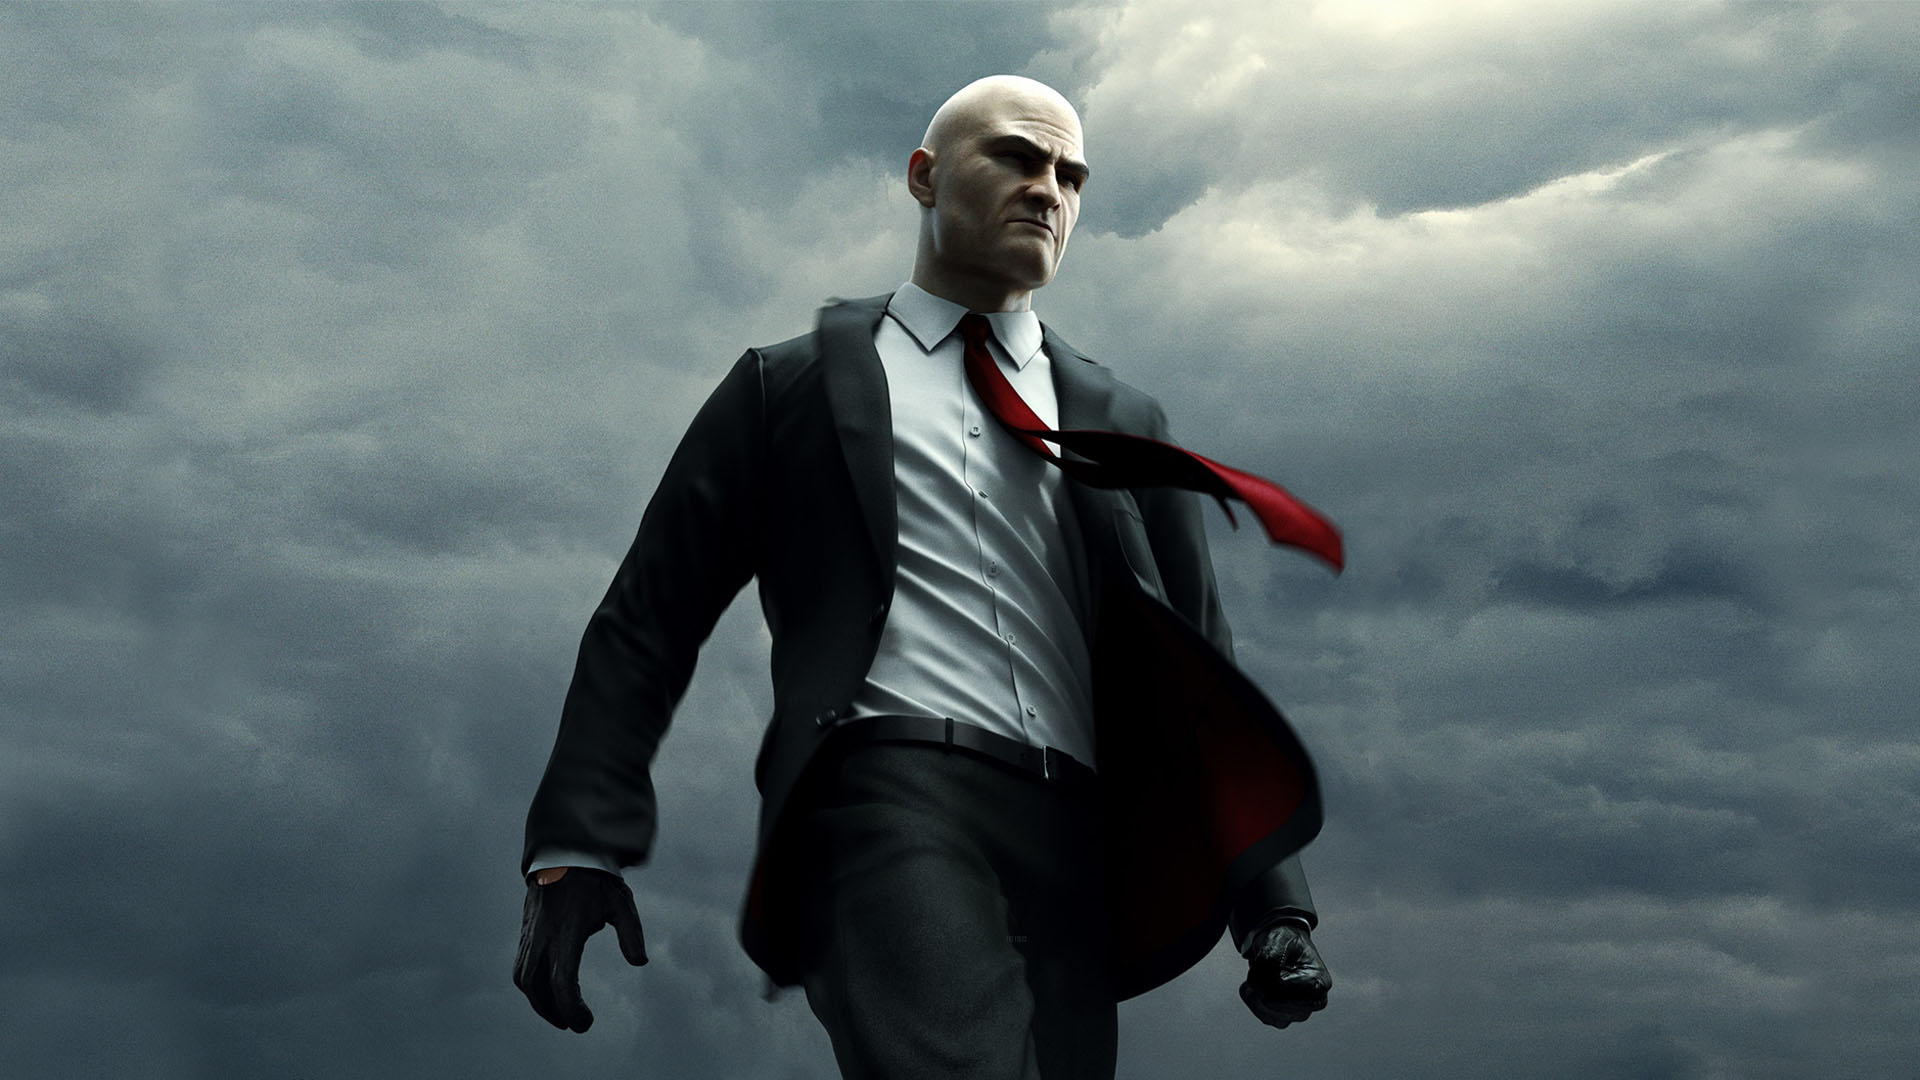 http://playingdaily.pl/wp-content/uploads/2014/03/Hitman-Absolution.jpeg